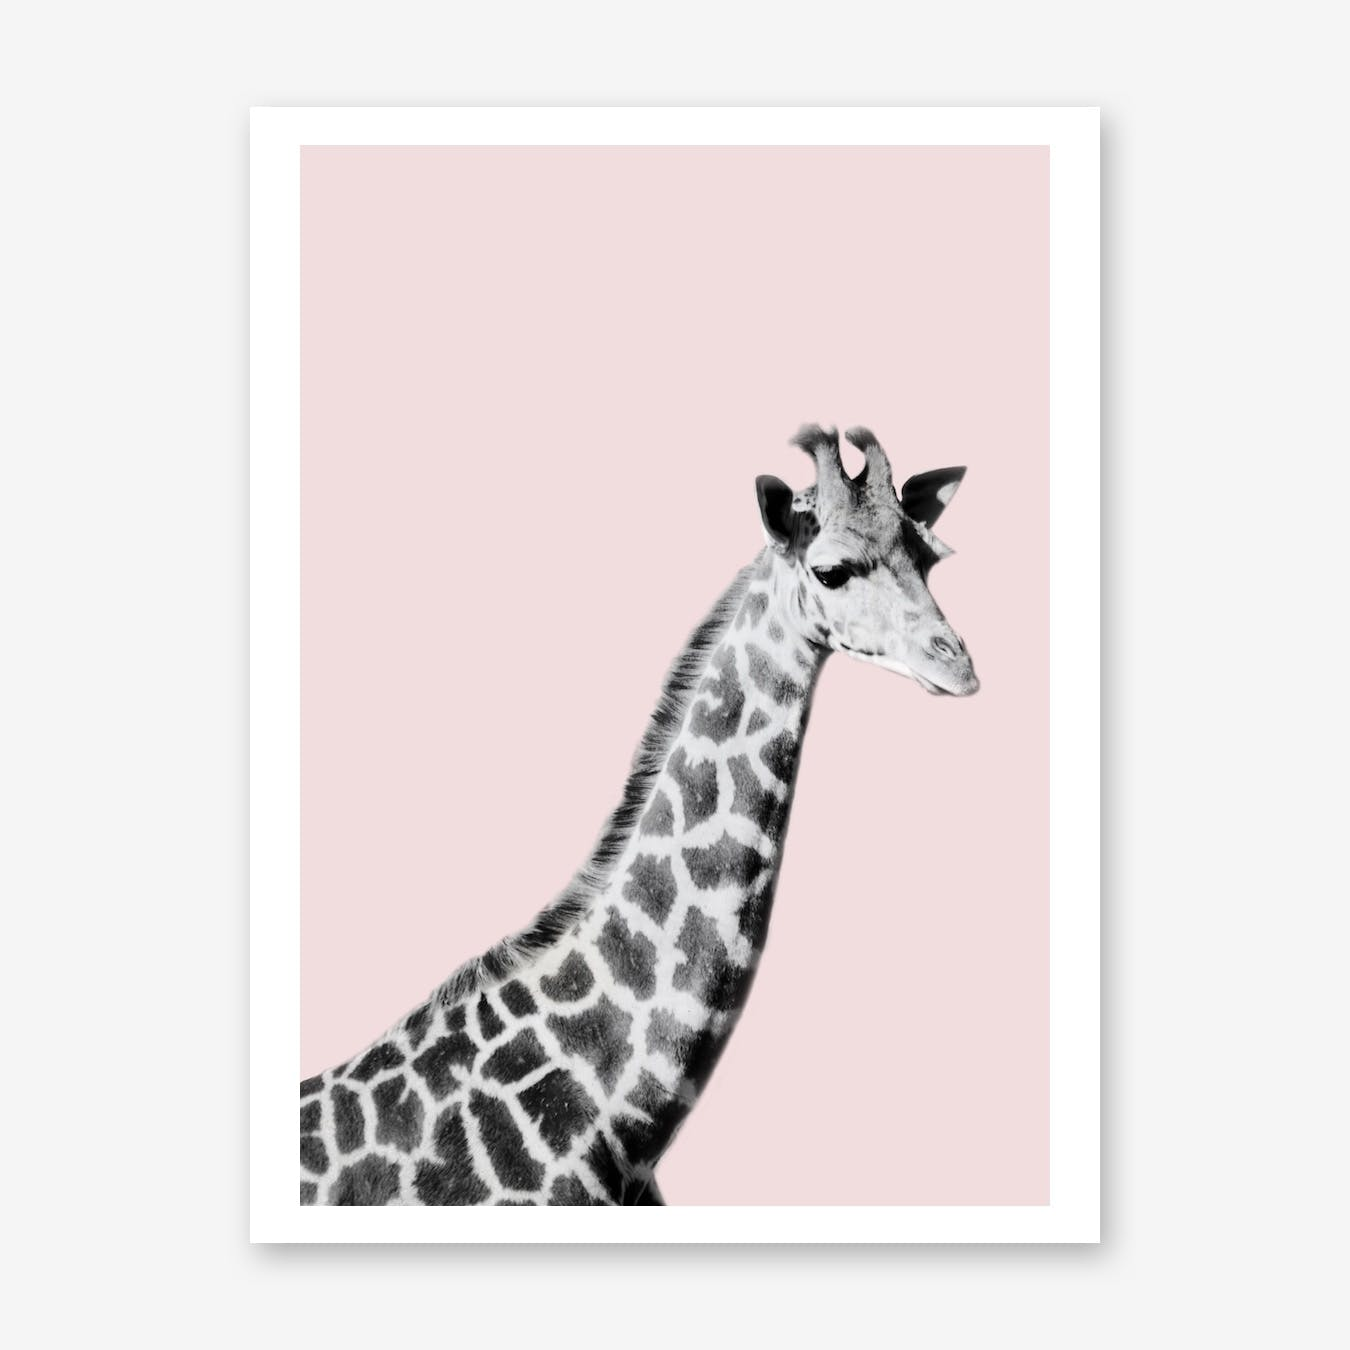 Giraffe on Pink